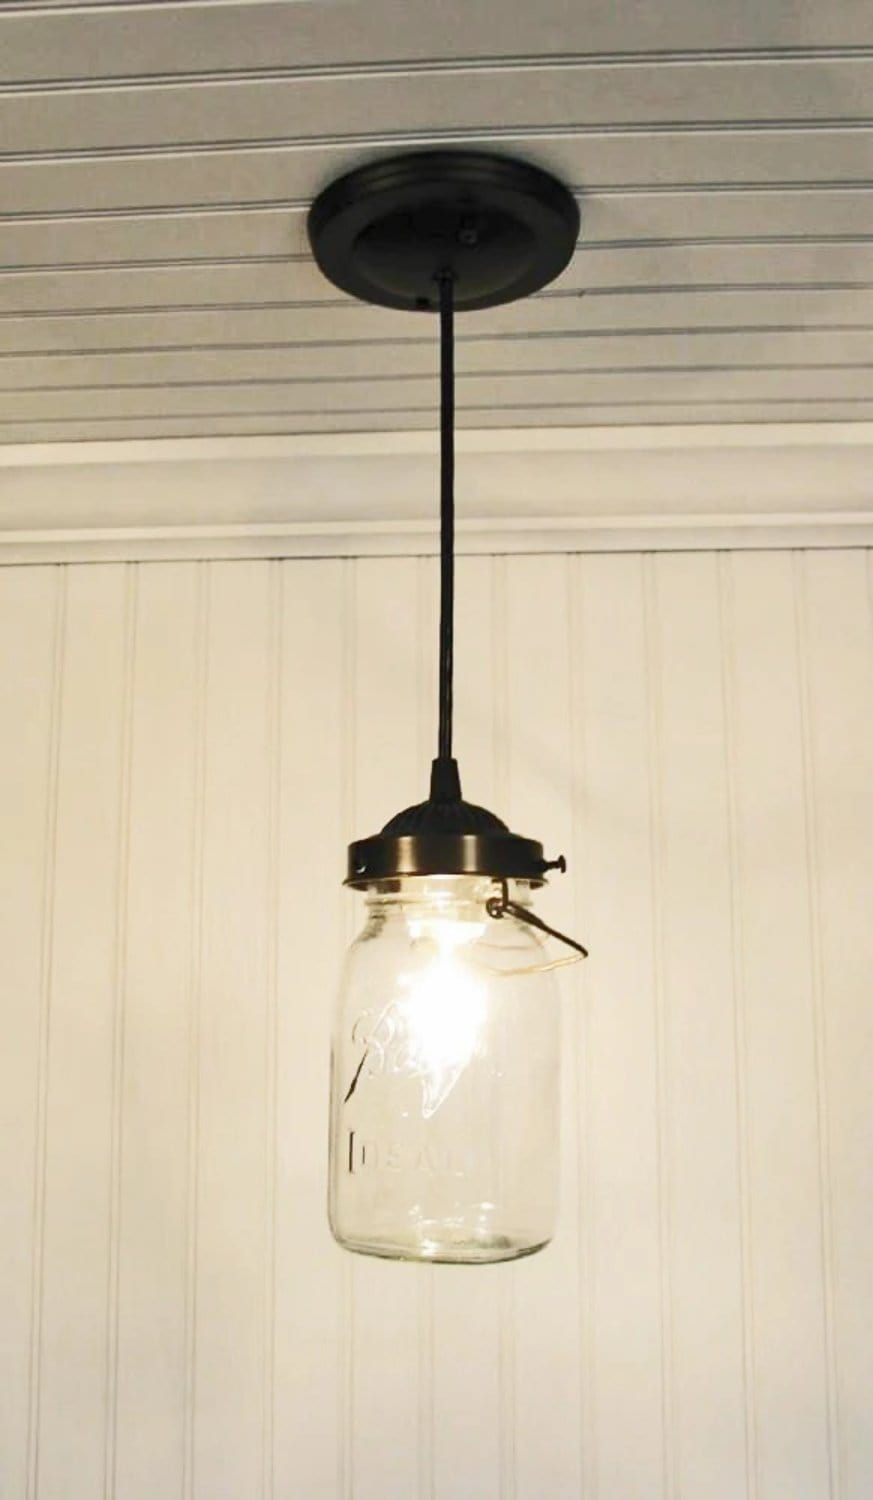 Rustic INDUSTRIAL Pendant Light Chandelier Ceiling Lighting Farmhouse Kitchen Glass Island LampGoods